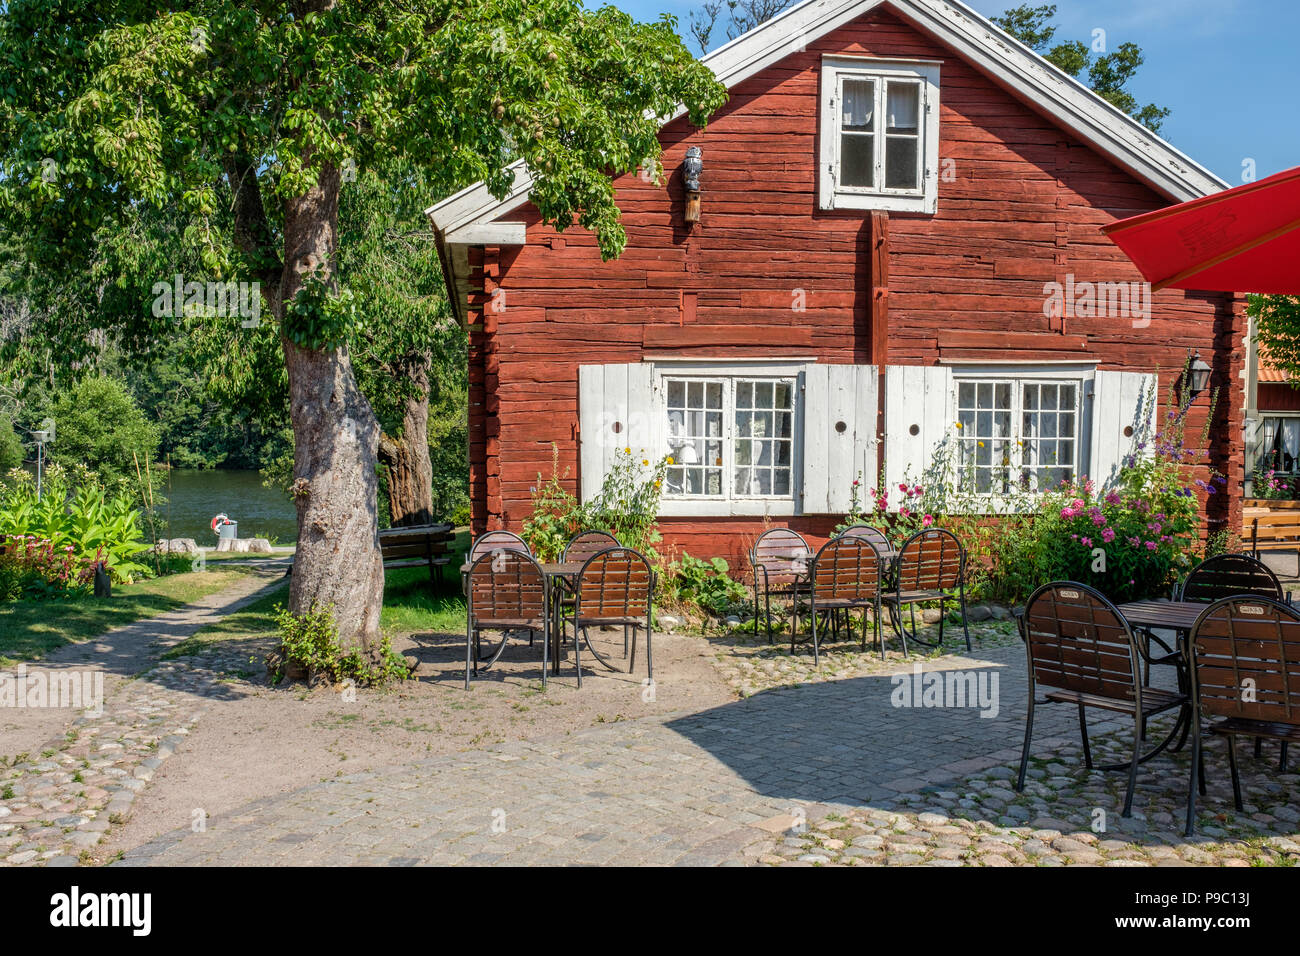 Historic Färgargården in Norrkoping. This is an open-air museum displaying a dyers life in the middle of the 19th century. - Stock Image